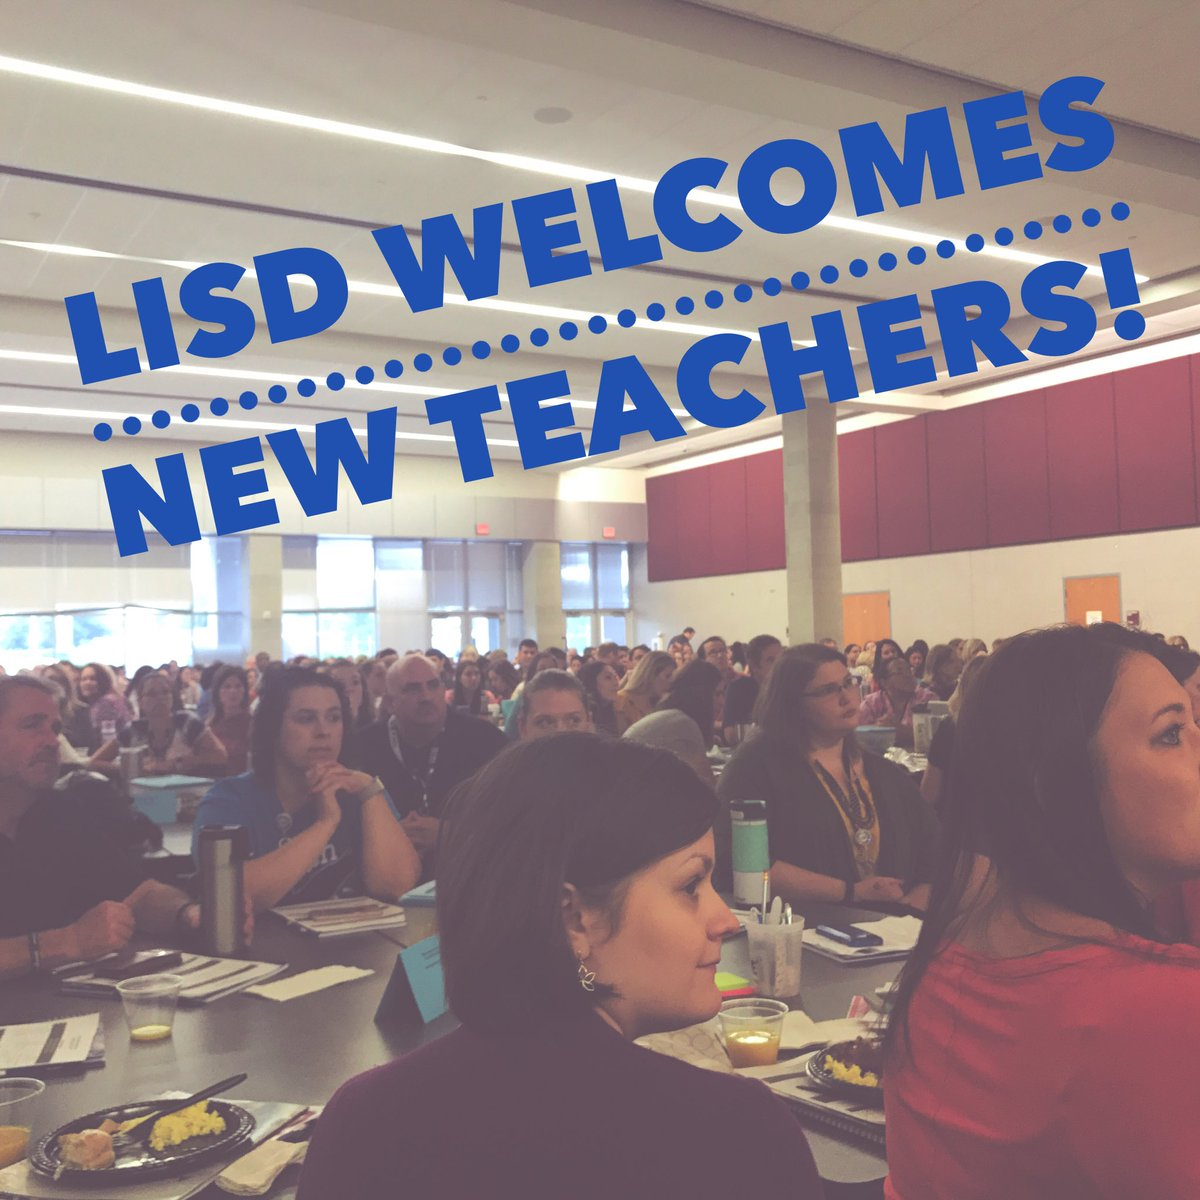 We are off to a great start to the 2017-18 school year! Welcoming over 366 new teachers to LISD. #Welcome #NewTeachers<br>http://pic.twitter.com/UxGulw4Upz